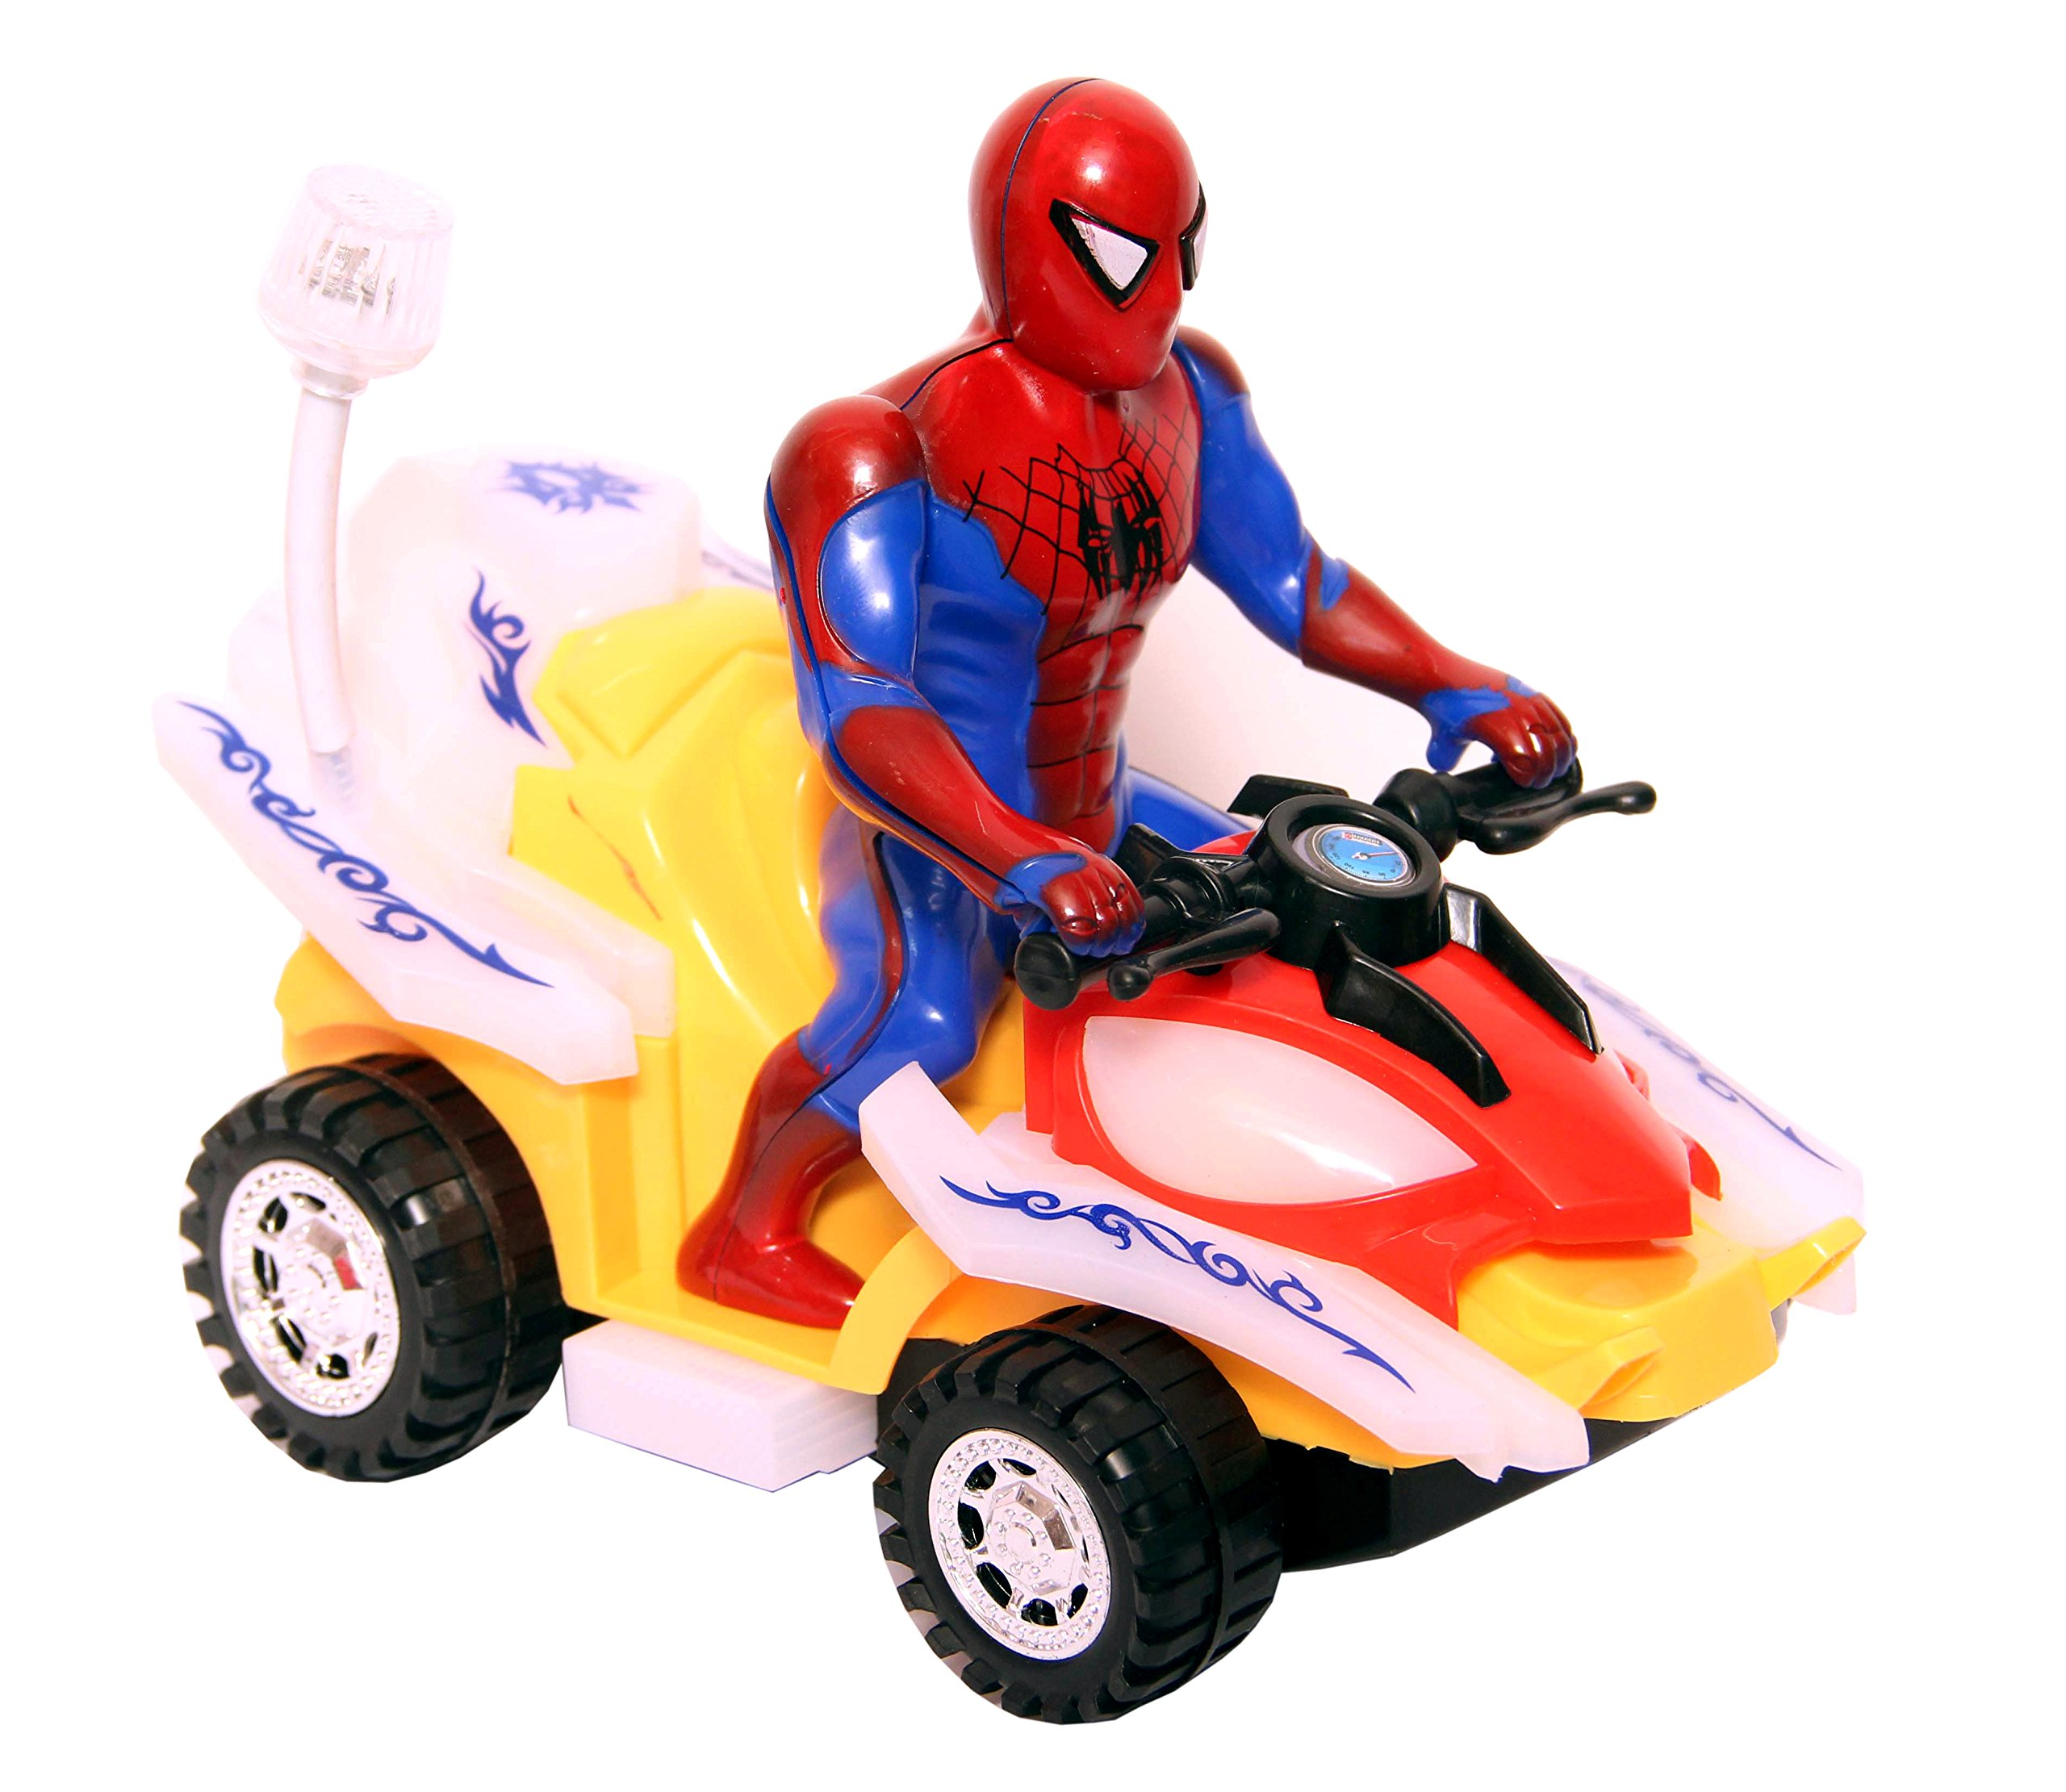 DOMENICO Fantasy Kids Plastic Spider Man Musical Light, Bump and Go Motorcycle Toy